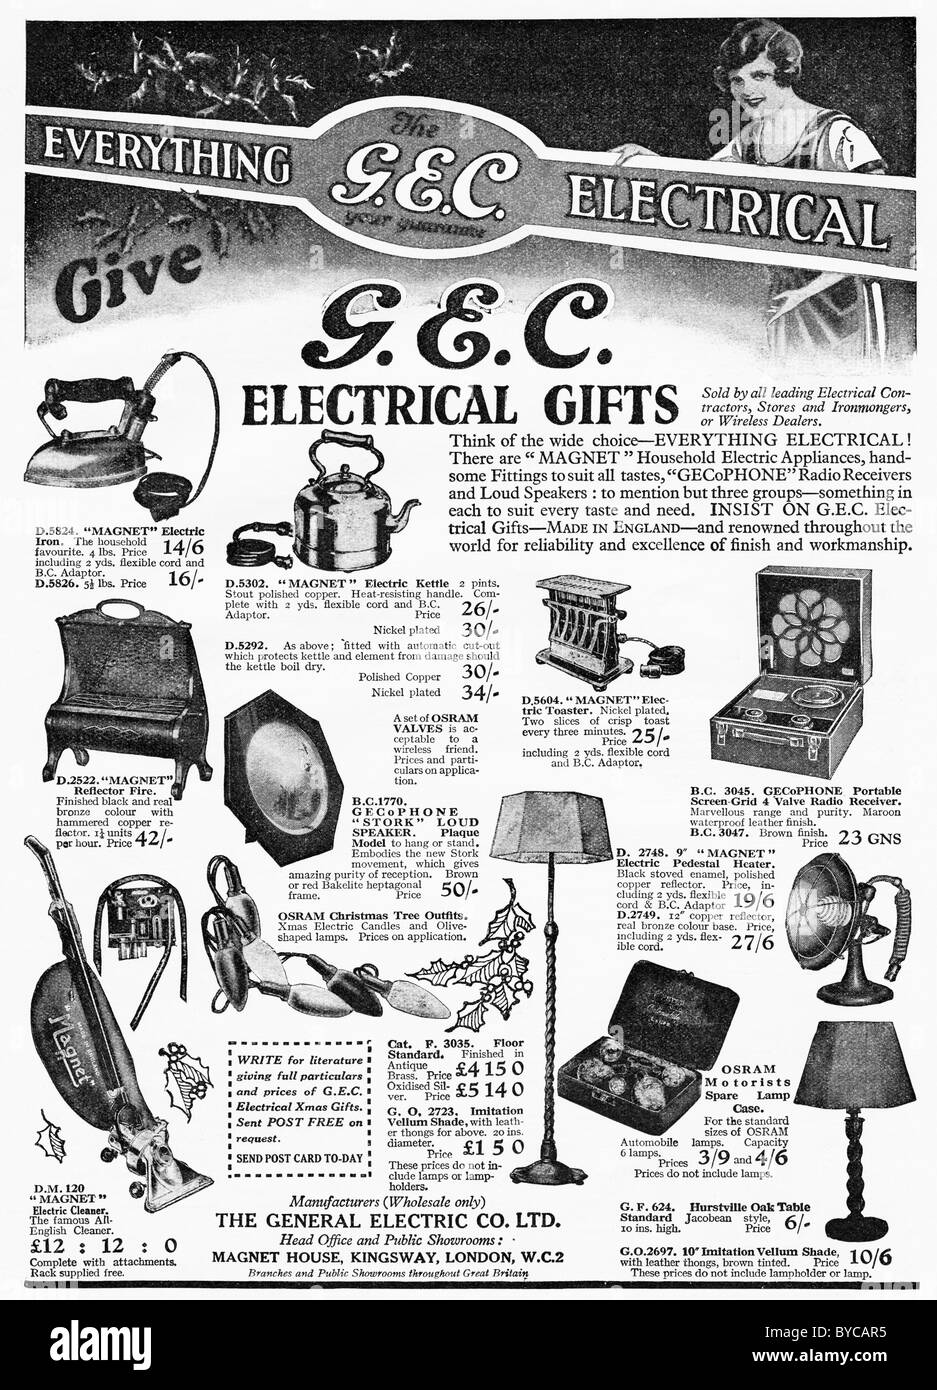 Original 1920s full page of advertisements in women's magazine for G.E.C. electrical gifts for Christmas - Stock Image